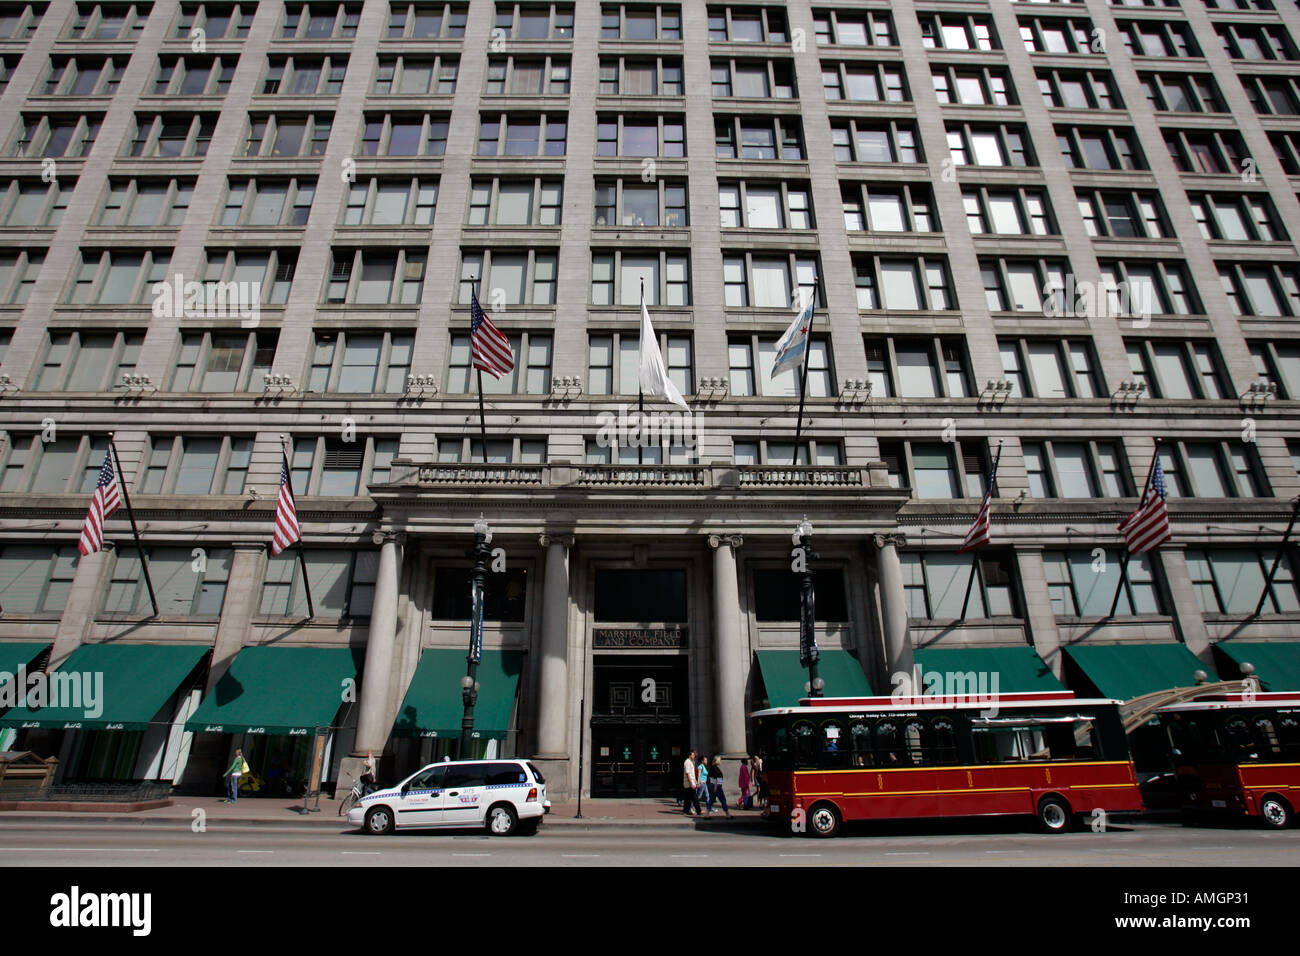 Marshall Fields and Company department store downtown Chicago Illinois USA - Stock Image